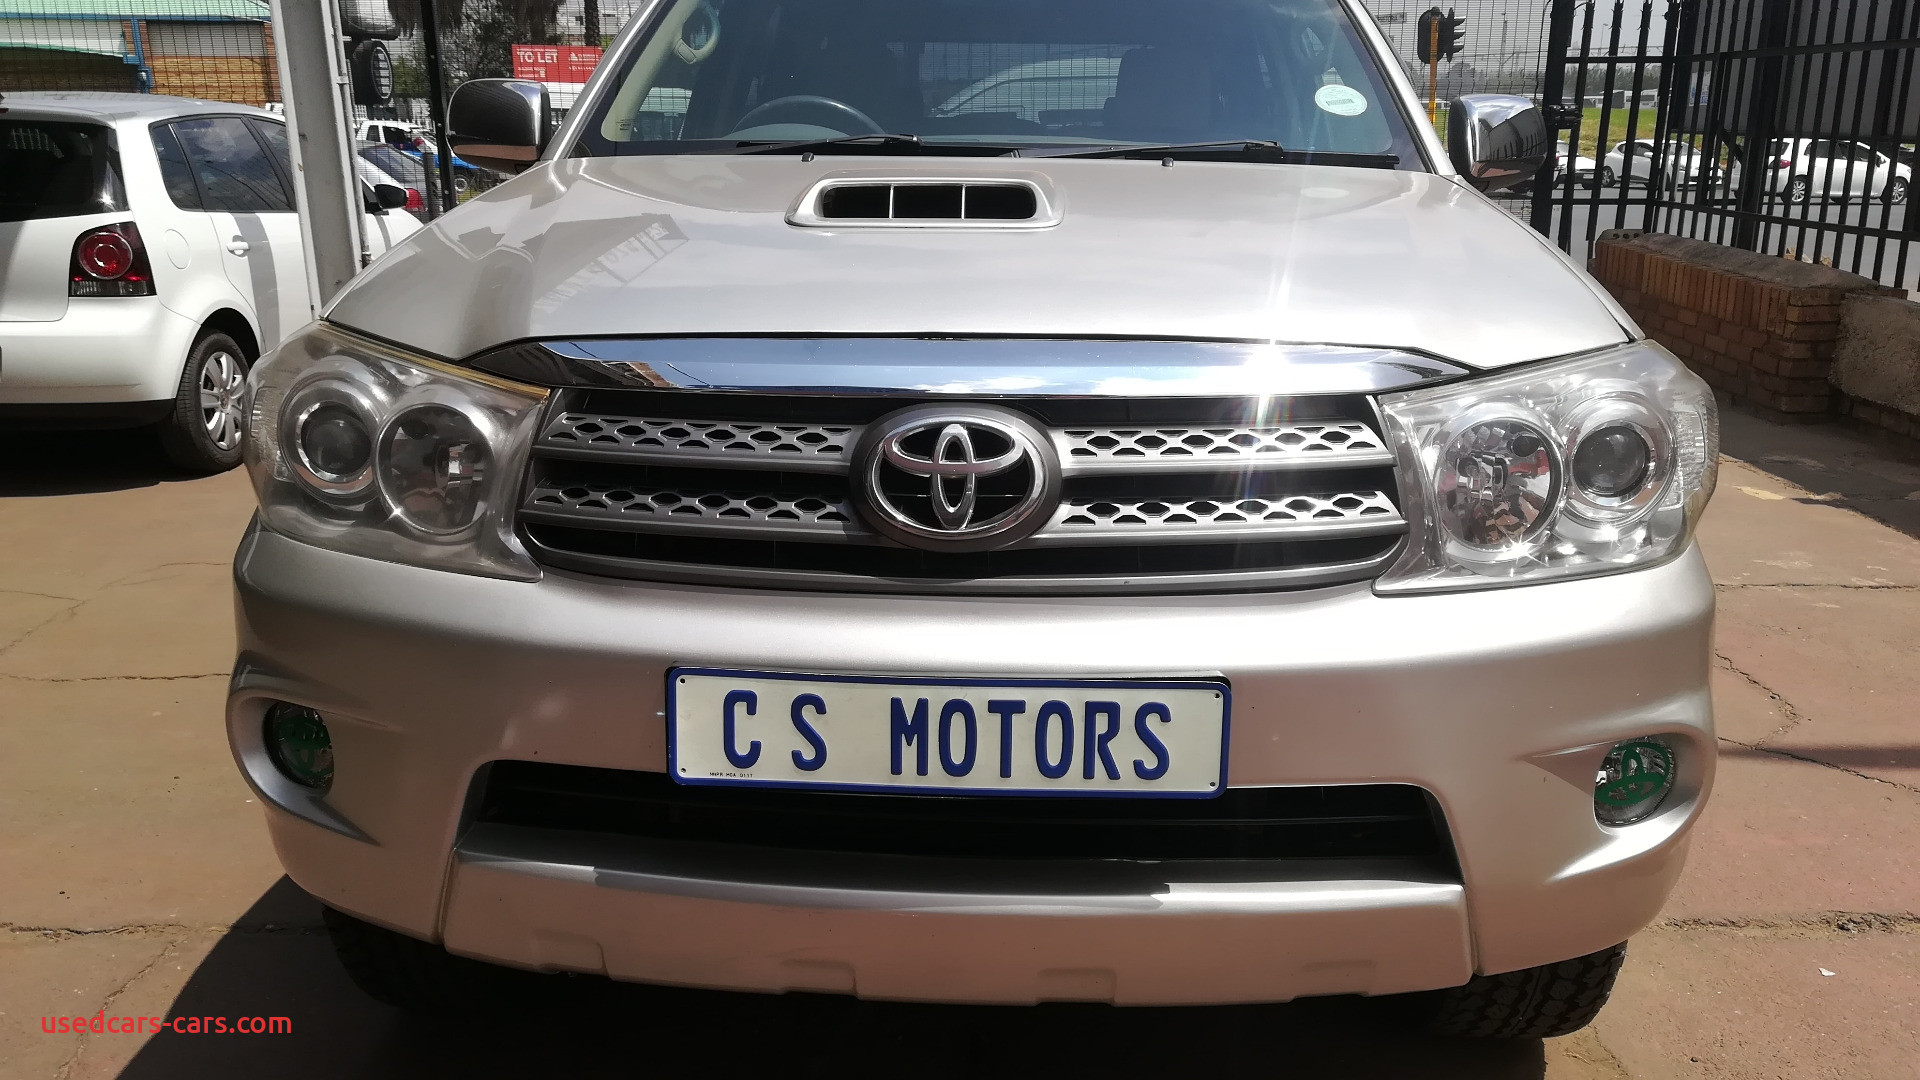 Used Cars for Sale Za Luxury toyota fortuner 3 0d 4d 4x4 for Sale In Gauteng